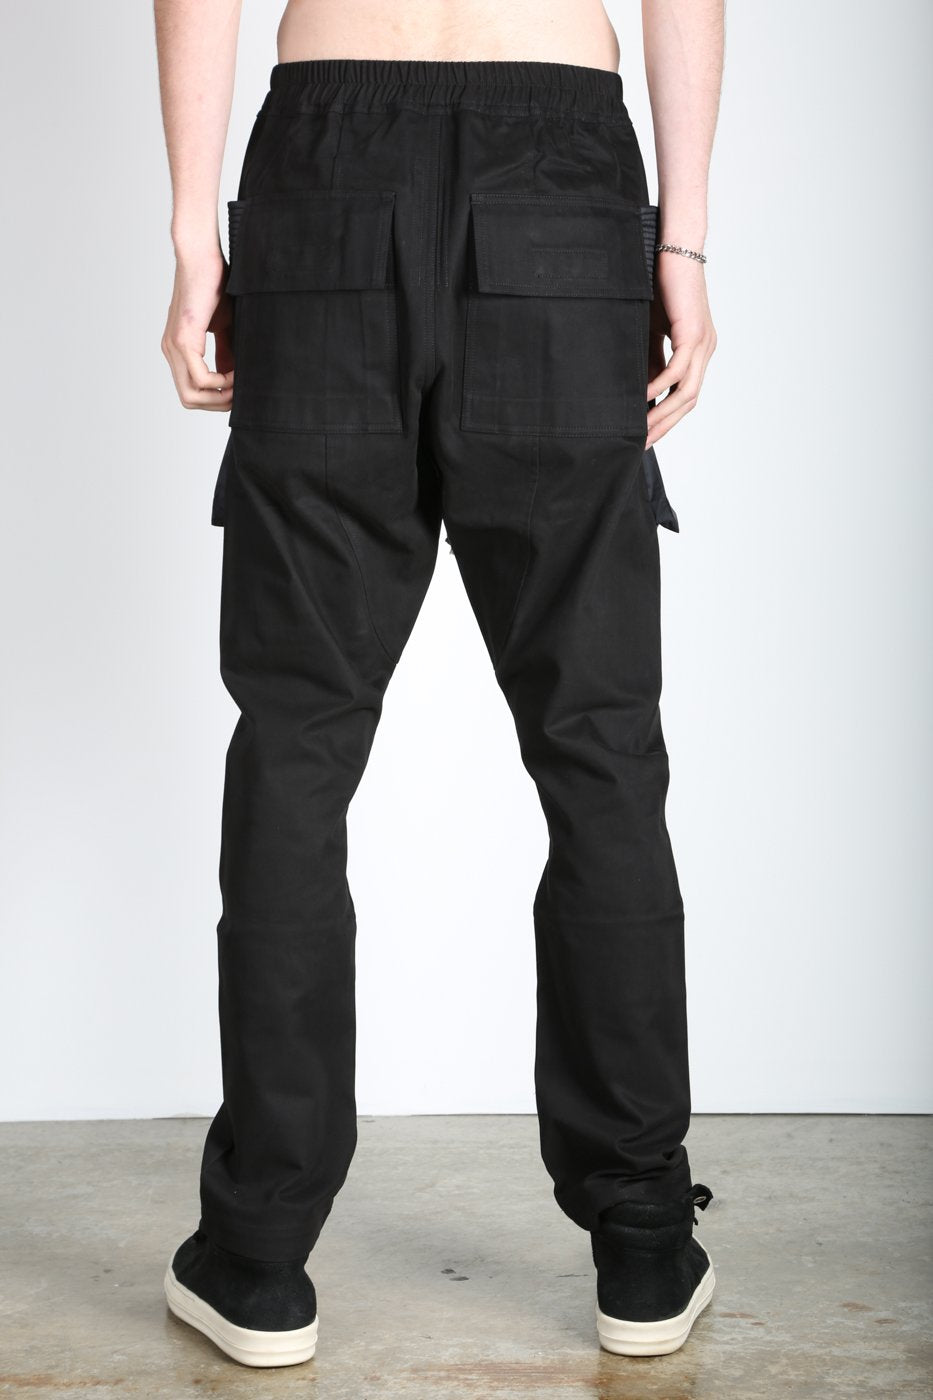 Black Creatch Cargo Pants